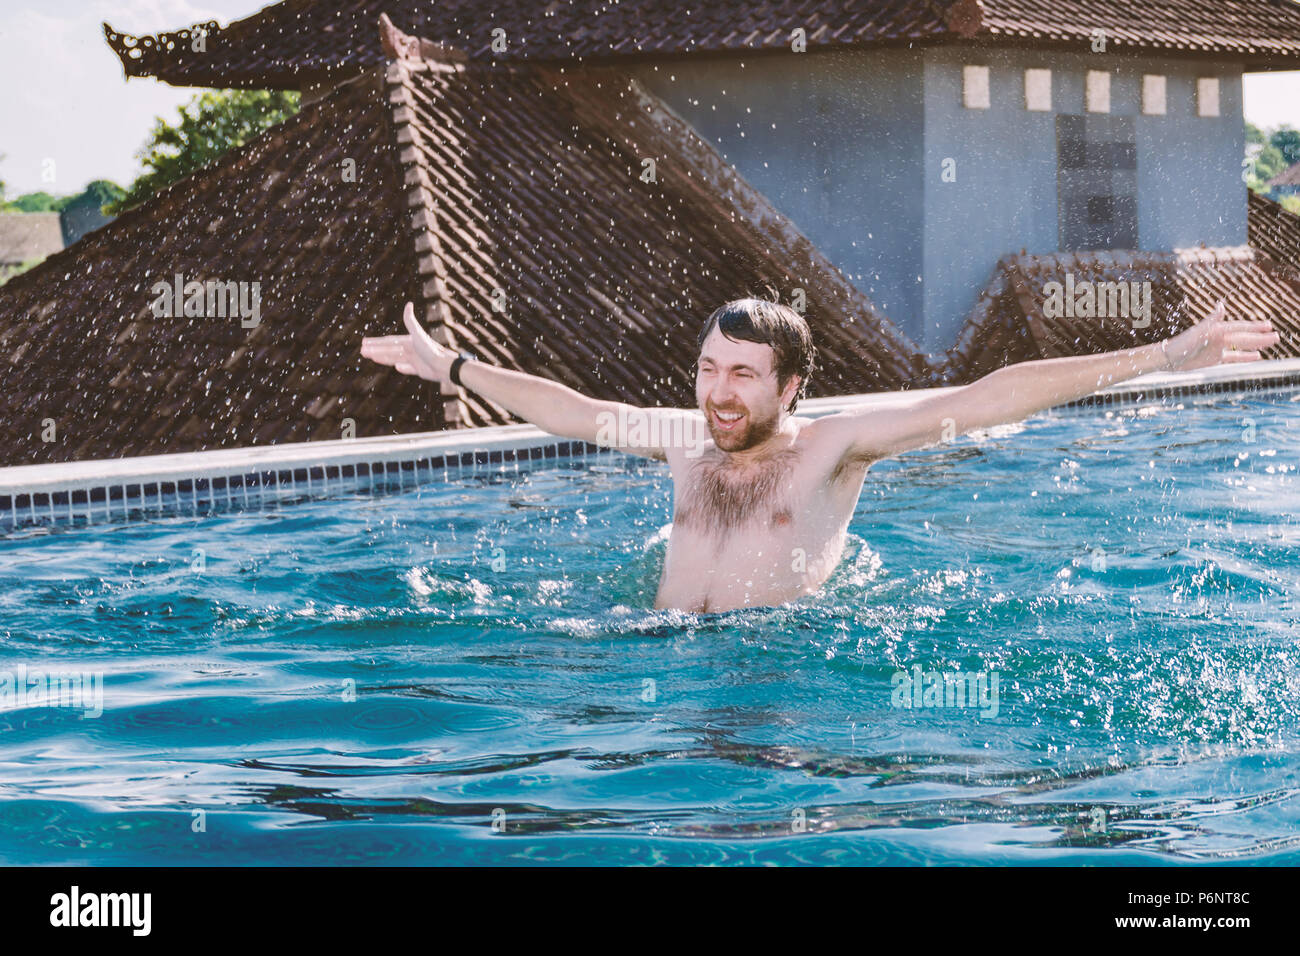 Portrait of happy smiling young man with hands up, which is bathed in pool on roof.  Emotions - joy, happiness, excited, positive, gleeful, glad - Stock Image